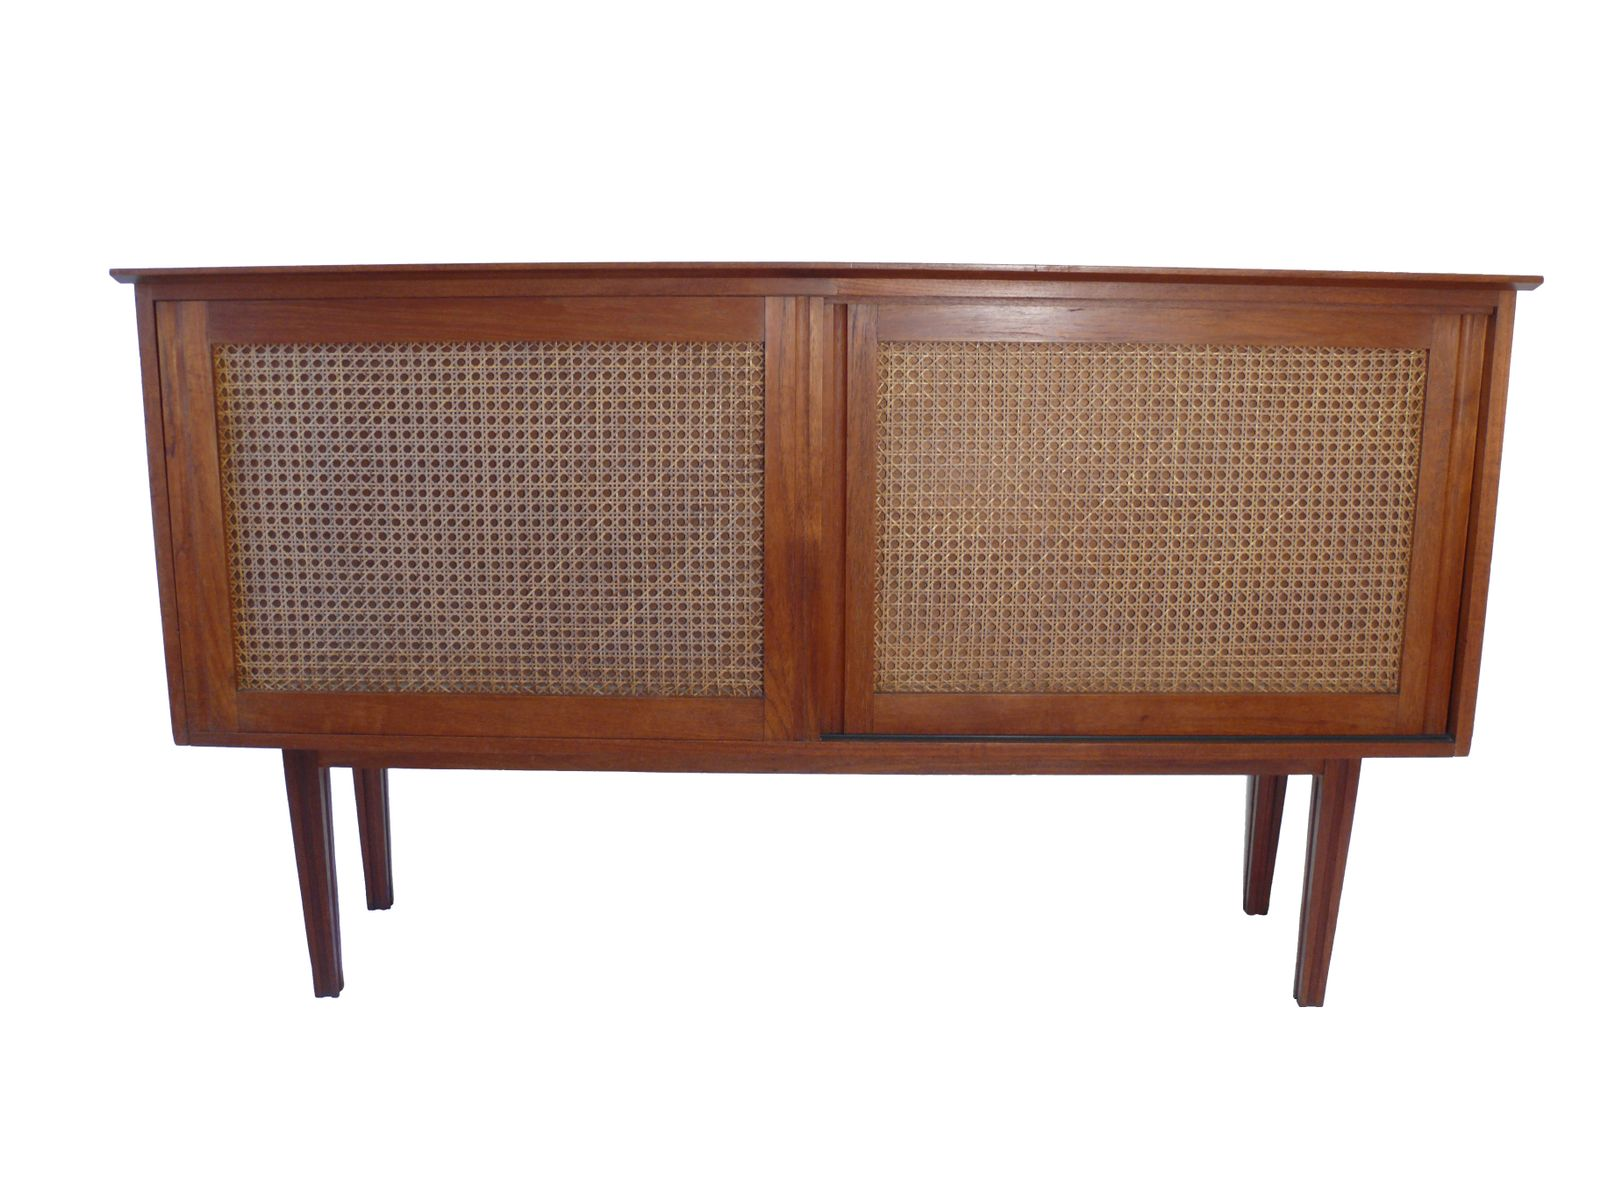 Wicker Fronted Sideboard by Tony Hunt for Terence Conran, 1960s